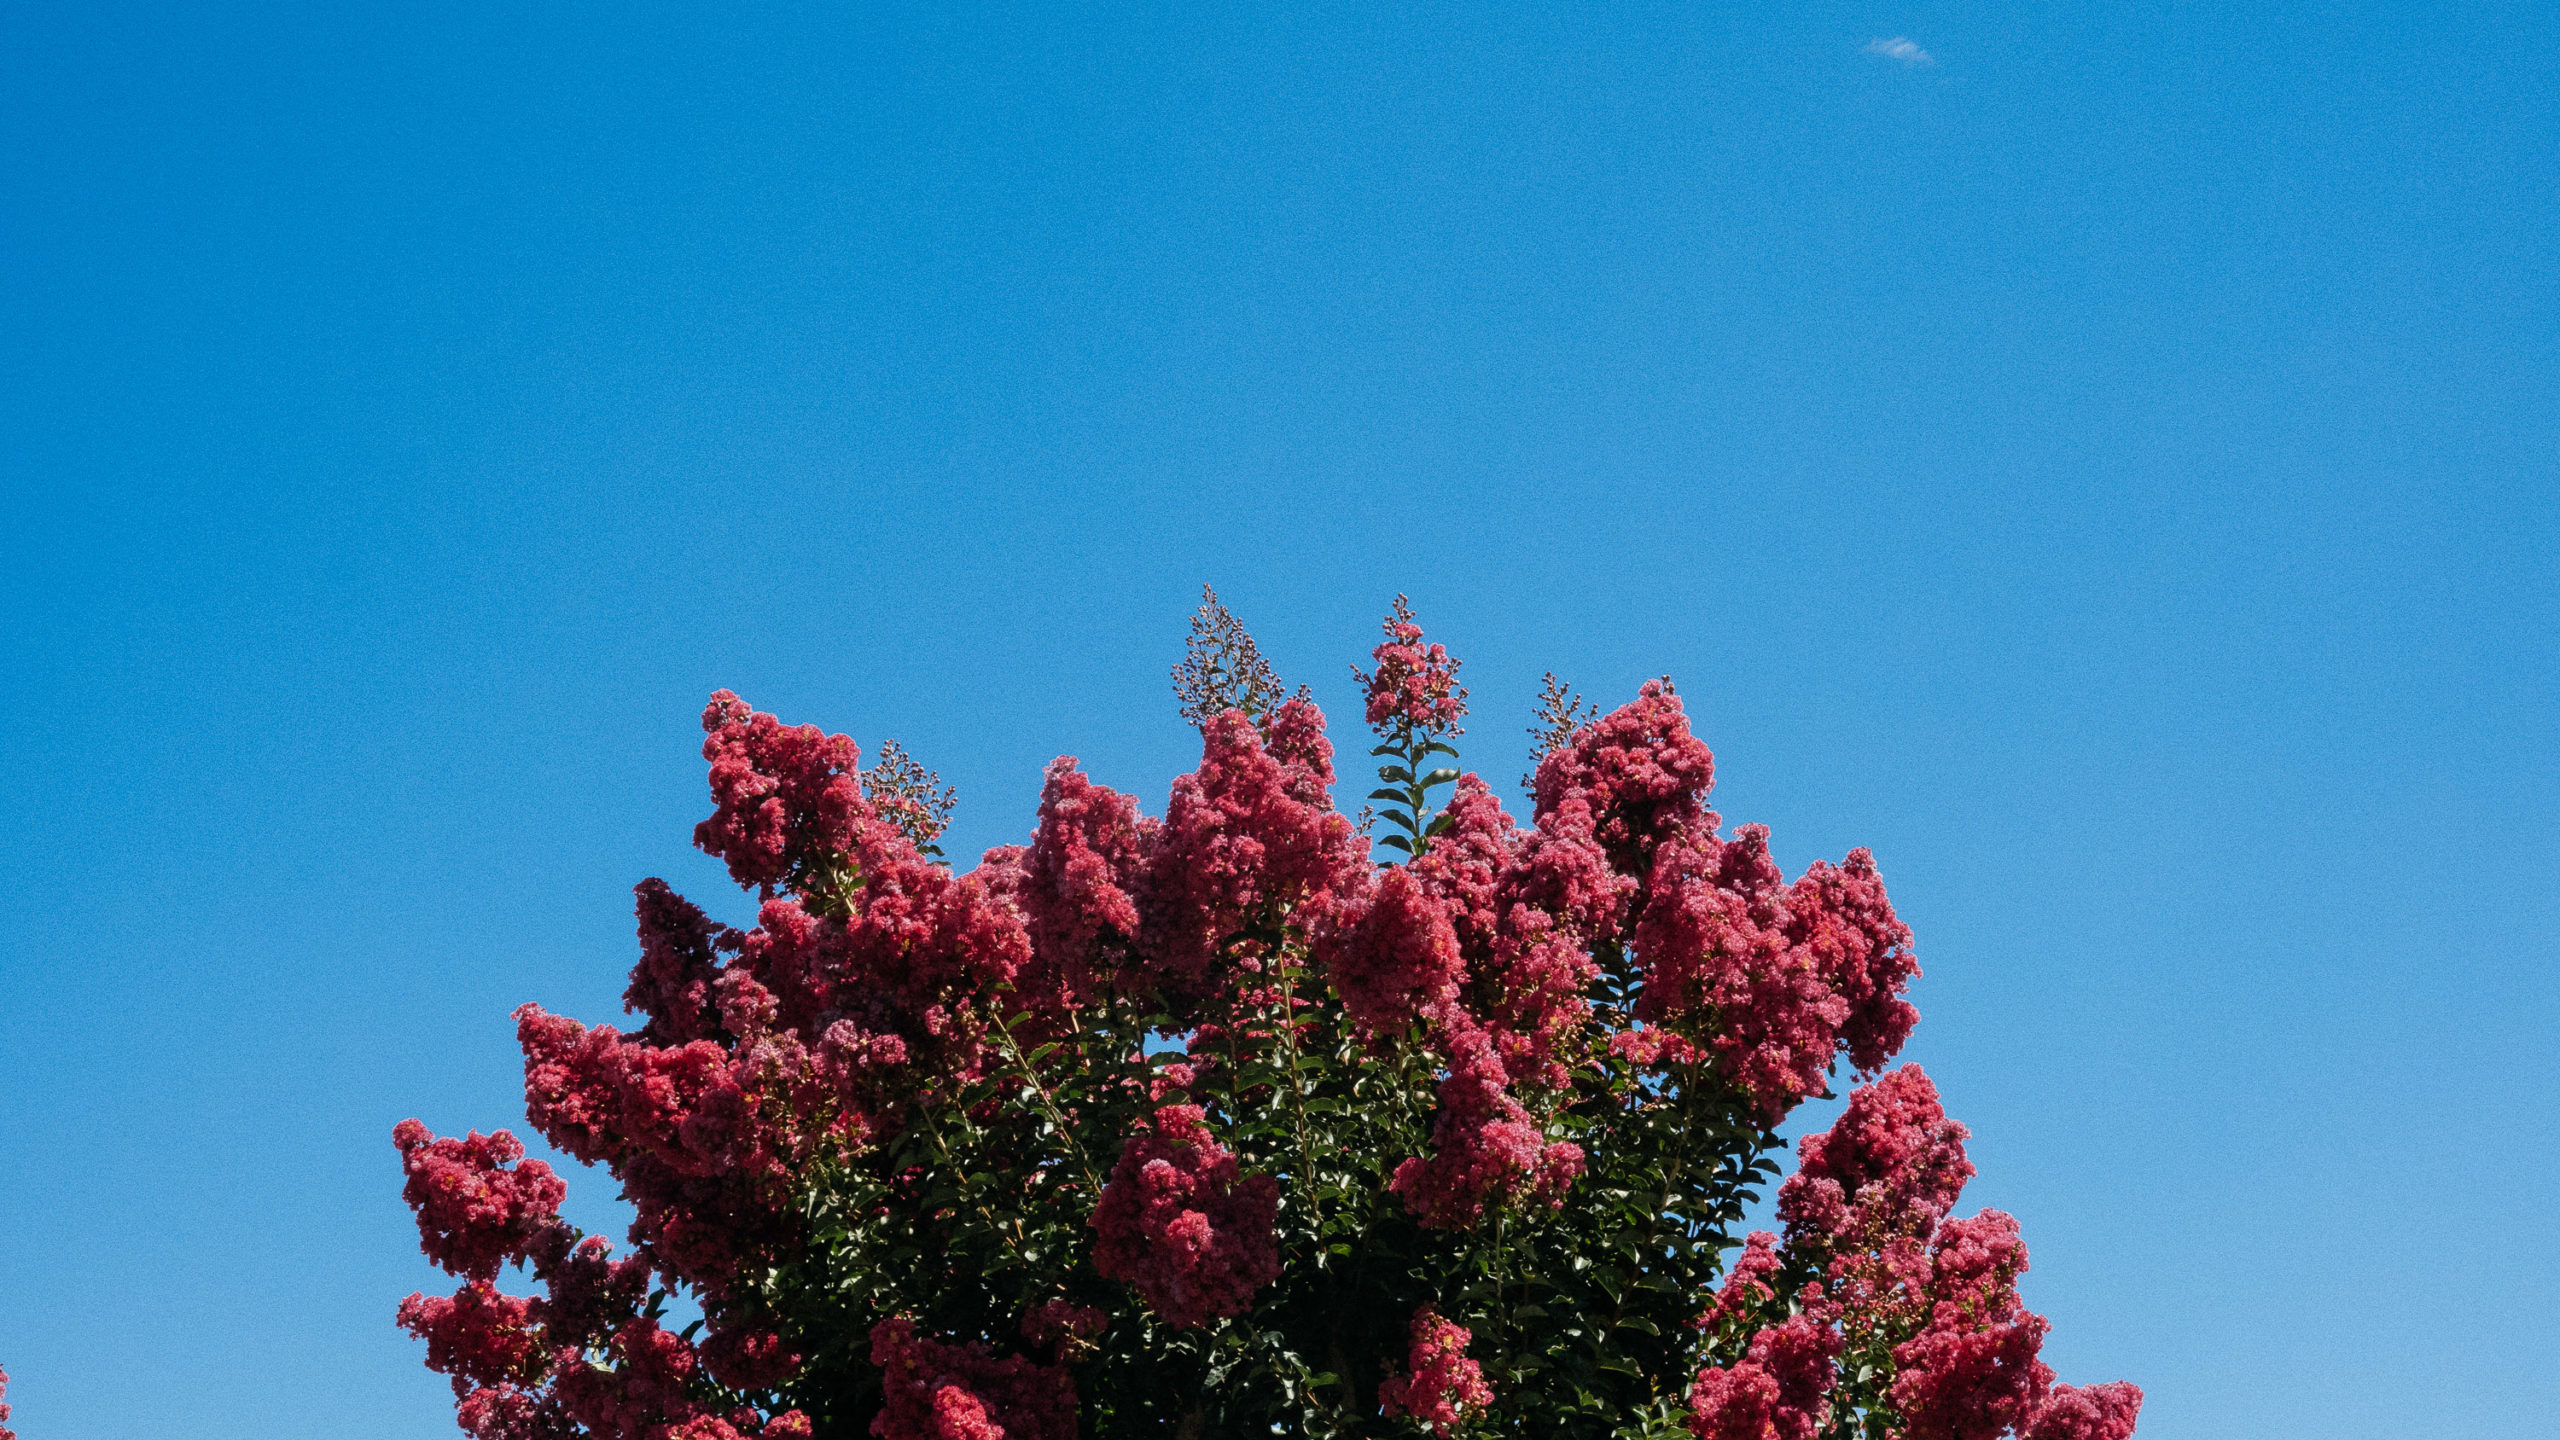 Red trees in bloom in California by the side of an In & Out Burger drive-thru